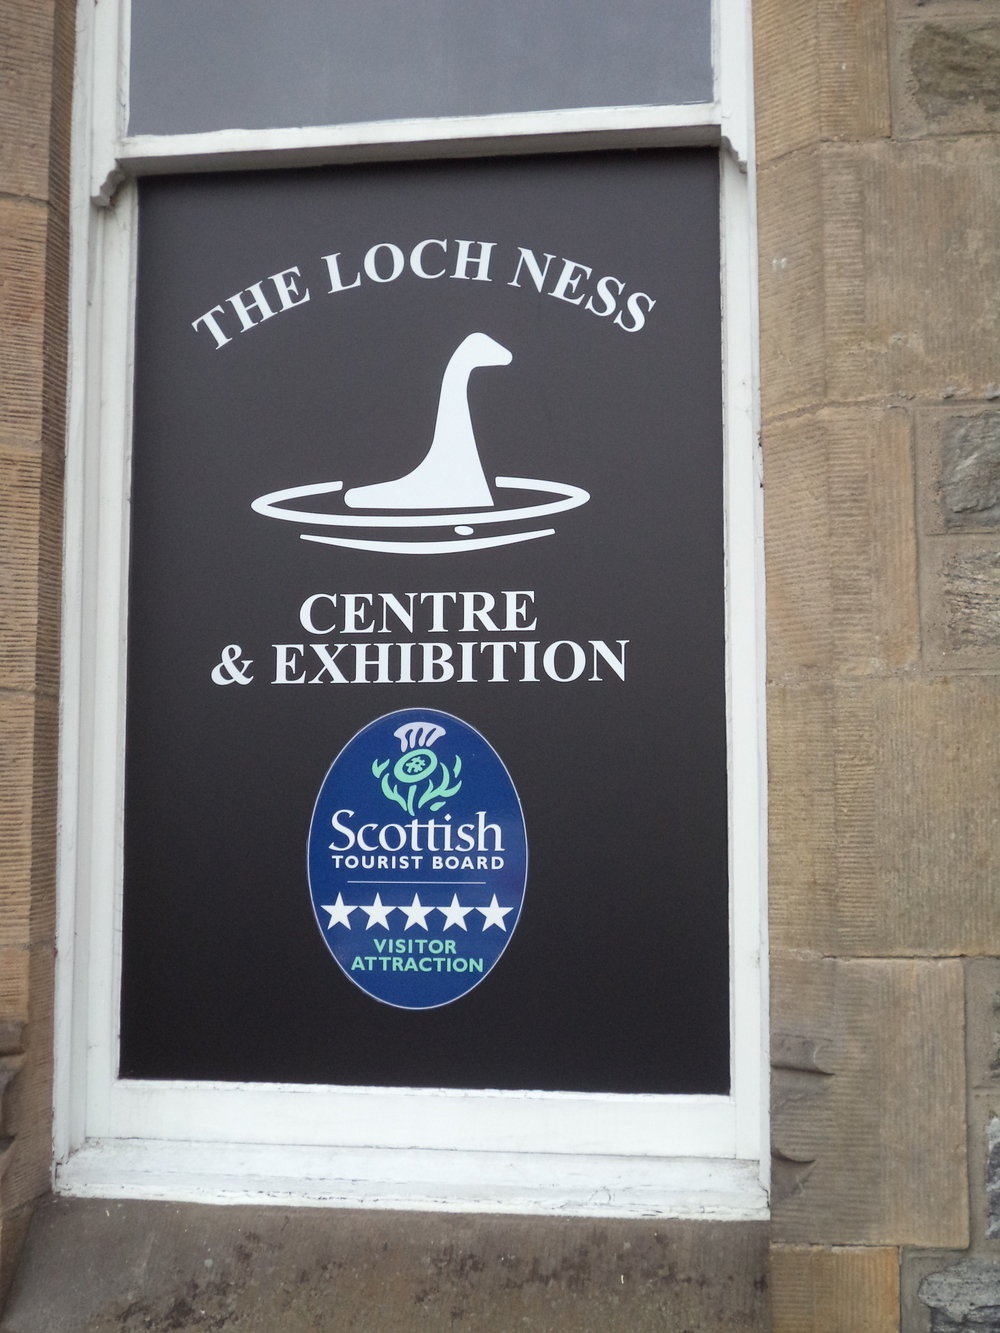 The Loch Ness Center and Exhibition.